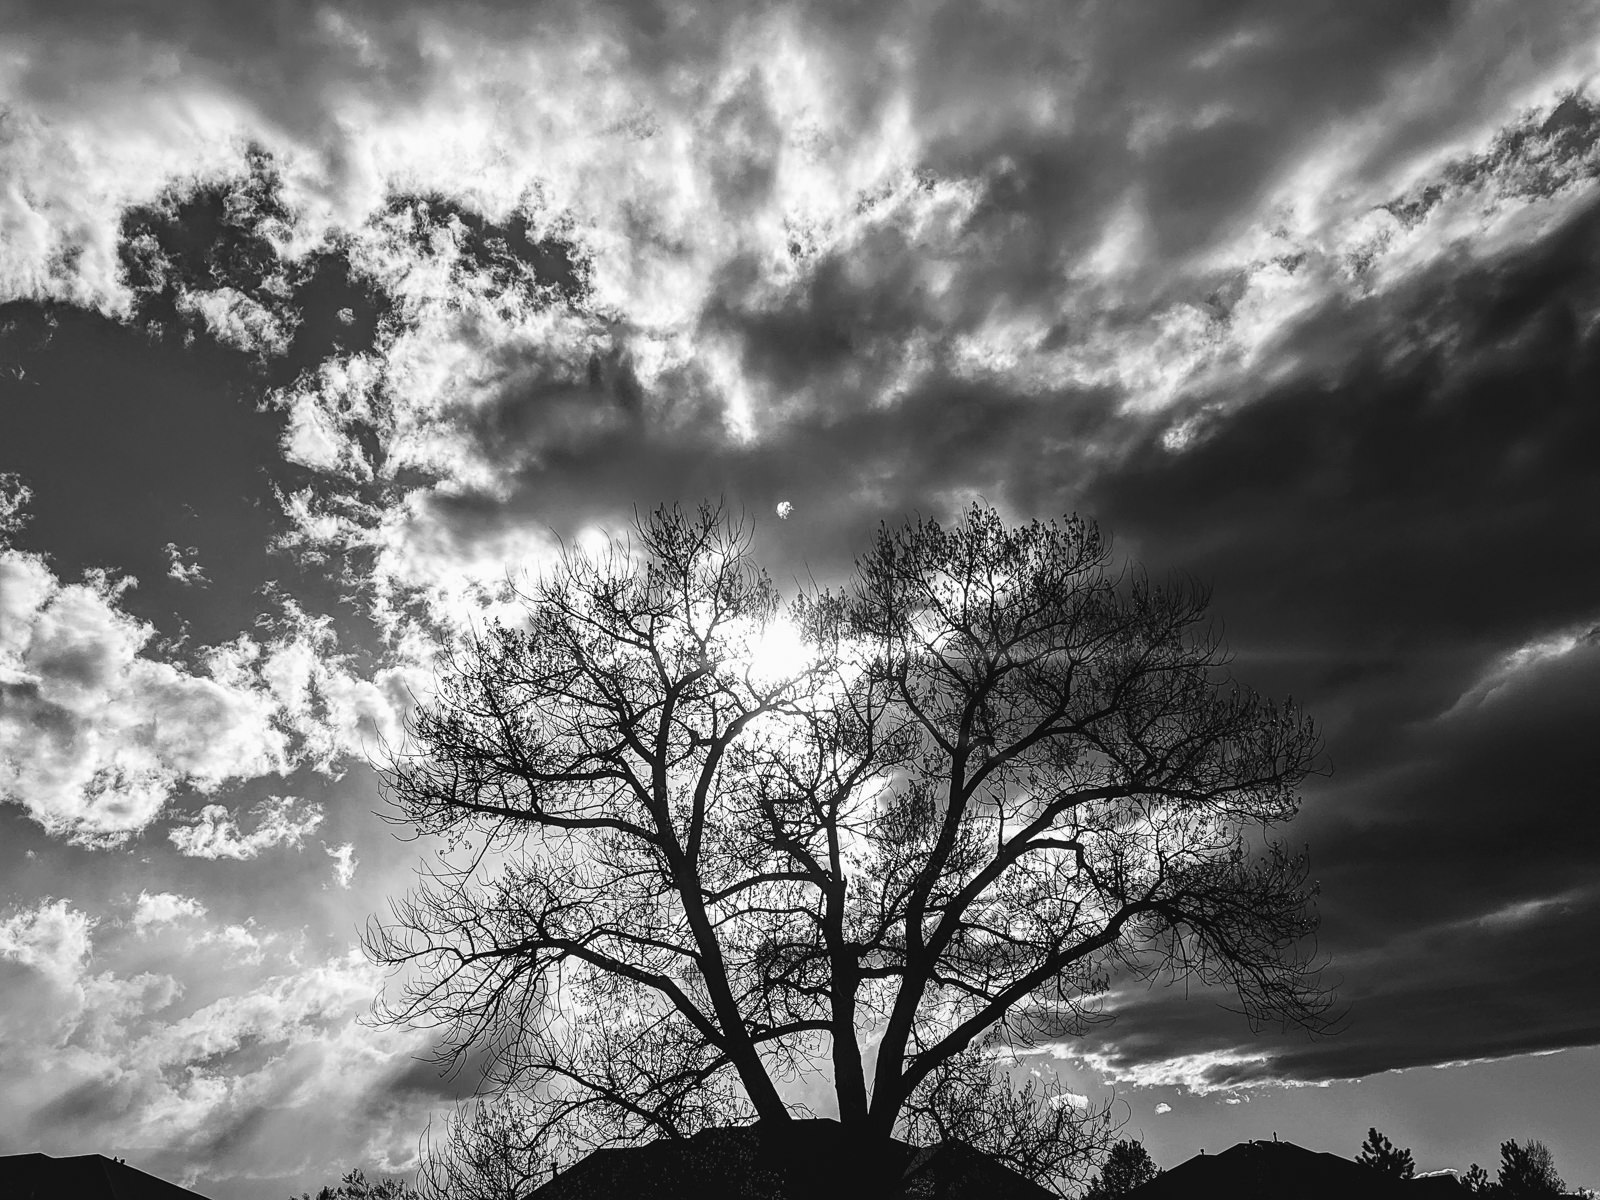 Day 147- 365 Day B&W Photo Challenge - Afternoon clouds at sunset -  Google Pixel 3, VSCO KX4 Film Simulation